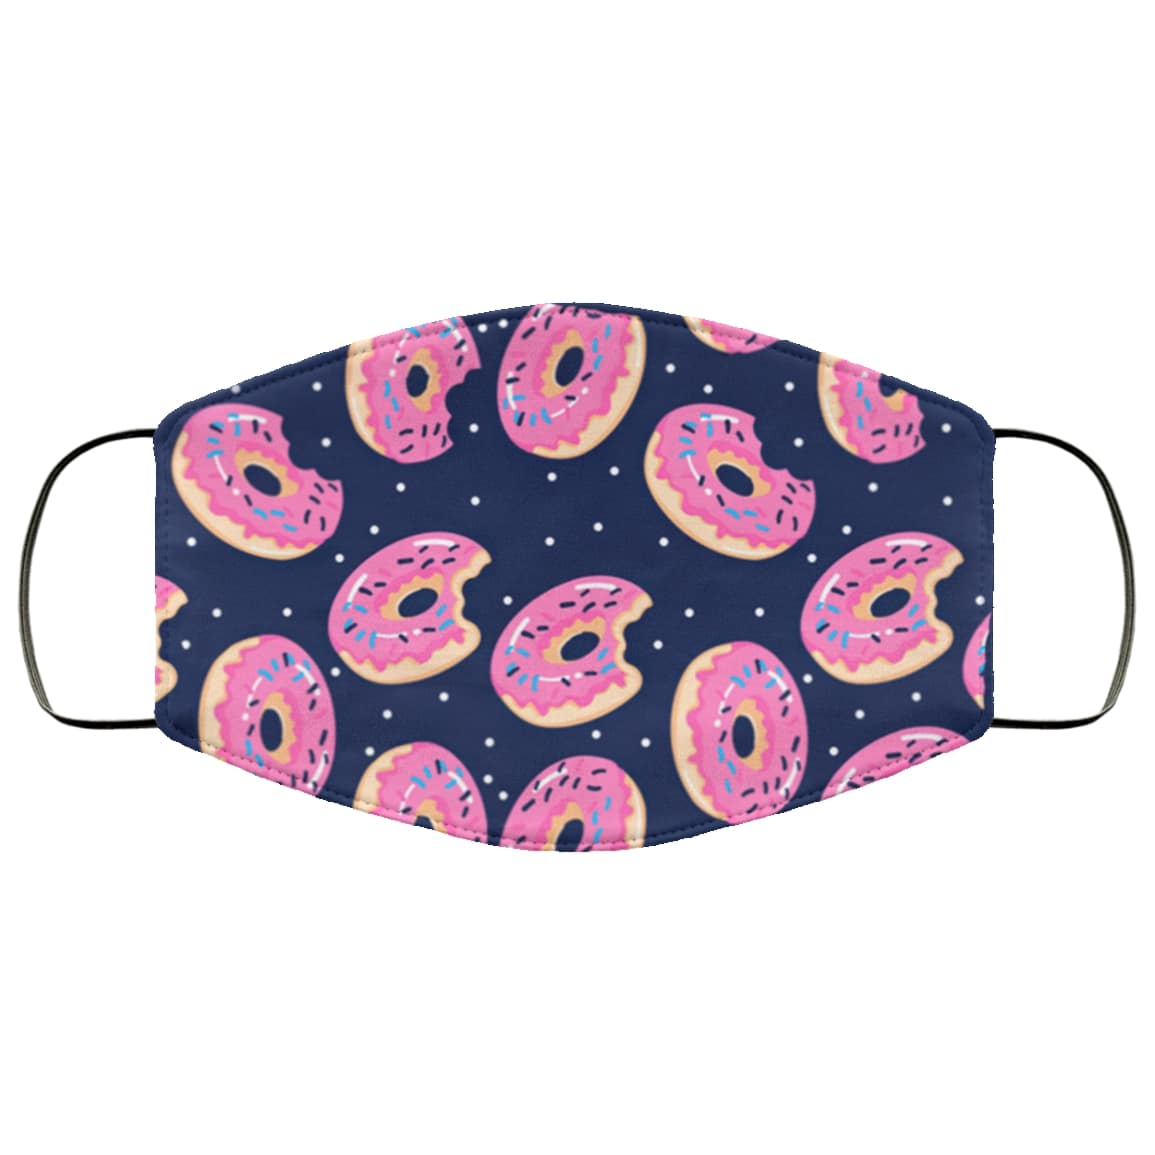 Pink donut all over printed face mask 2